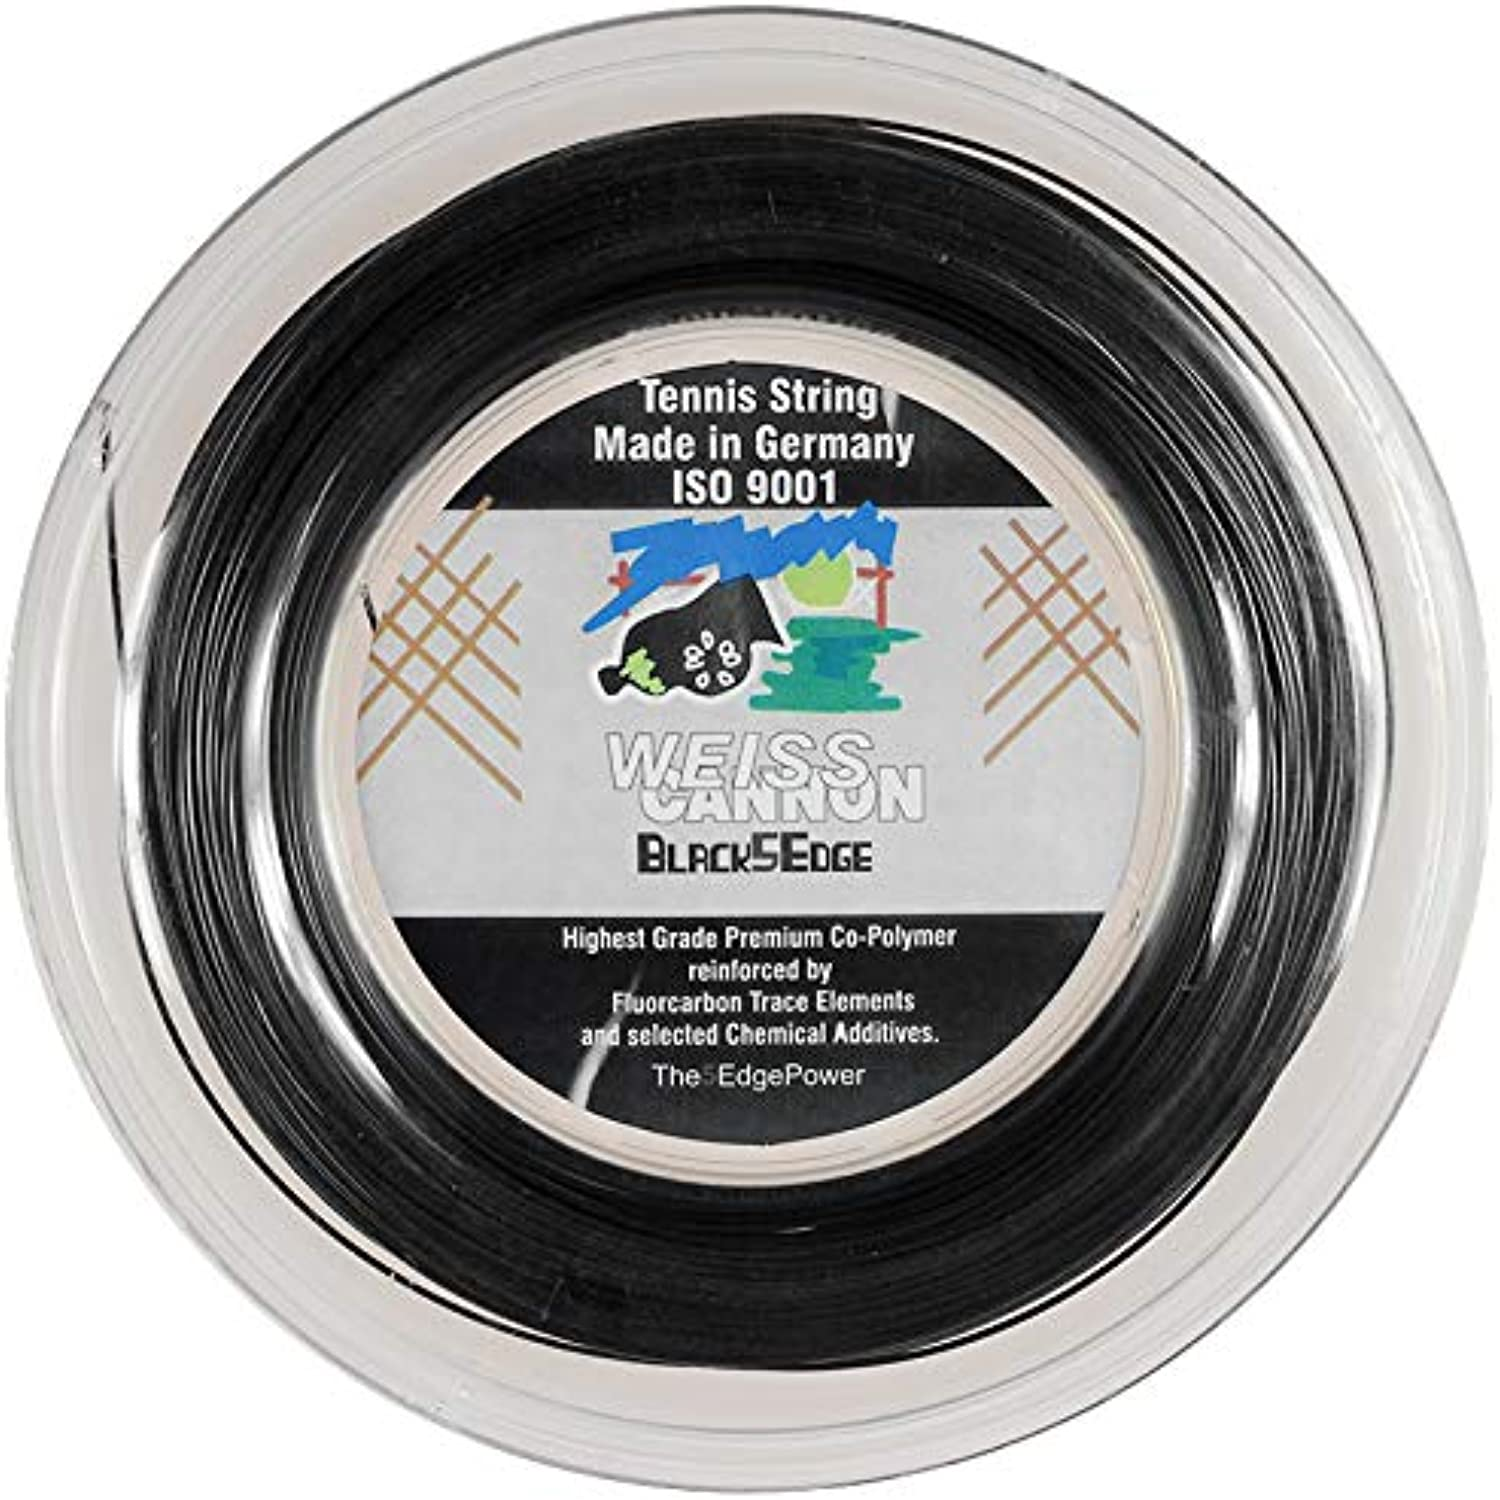 Weiss Cannon Black5Edge Tennis String - 1.24mm   17 (Black) 660ft 200m Reel Black 5 Edge